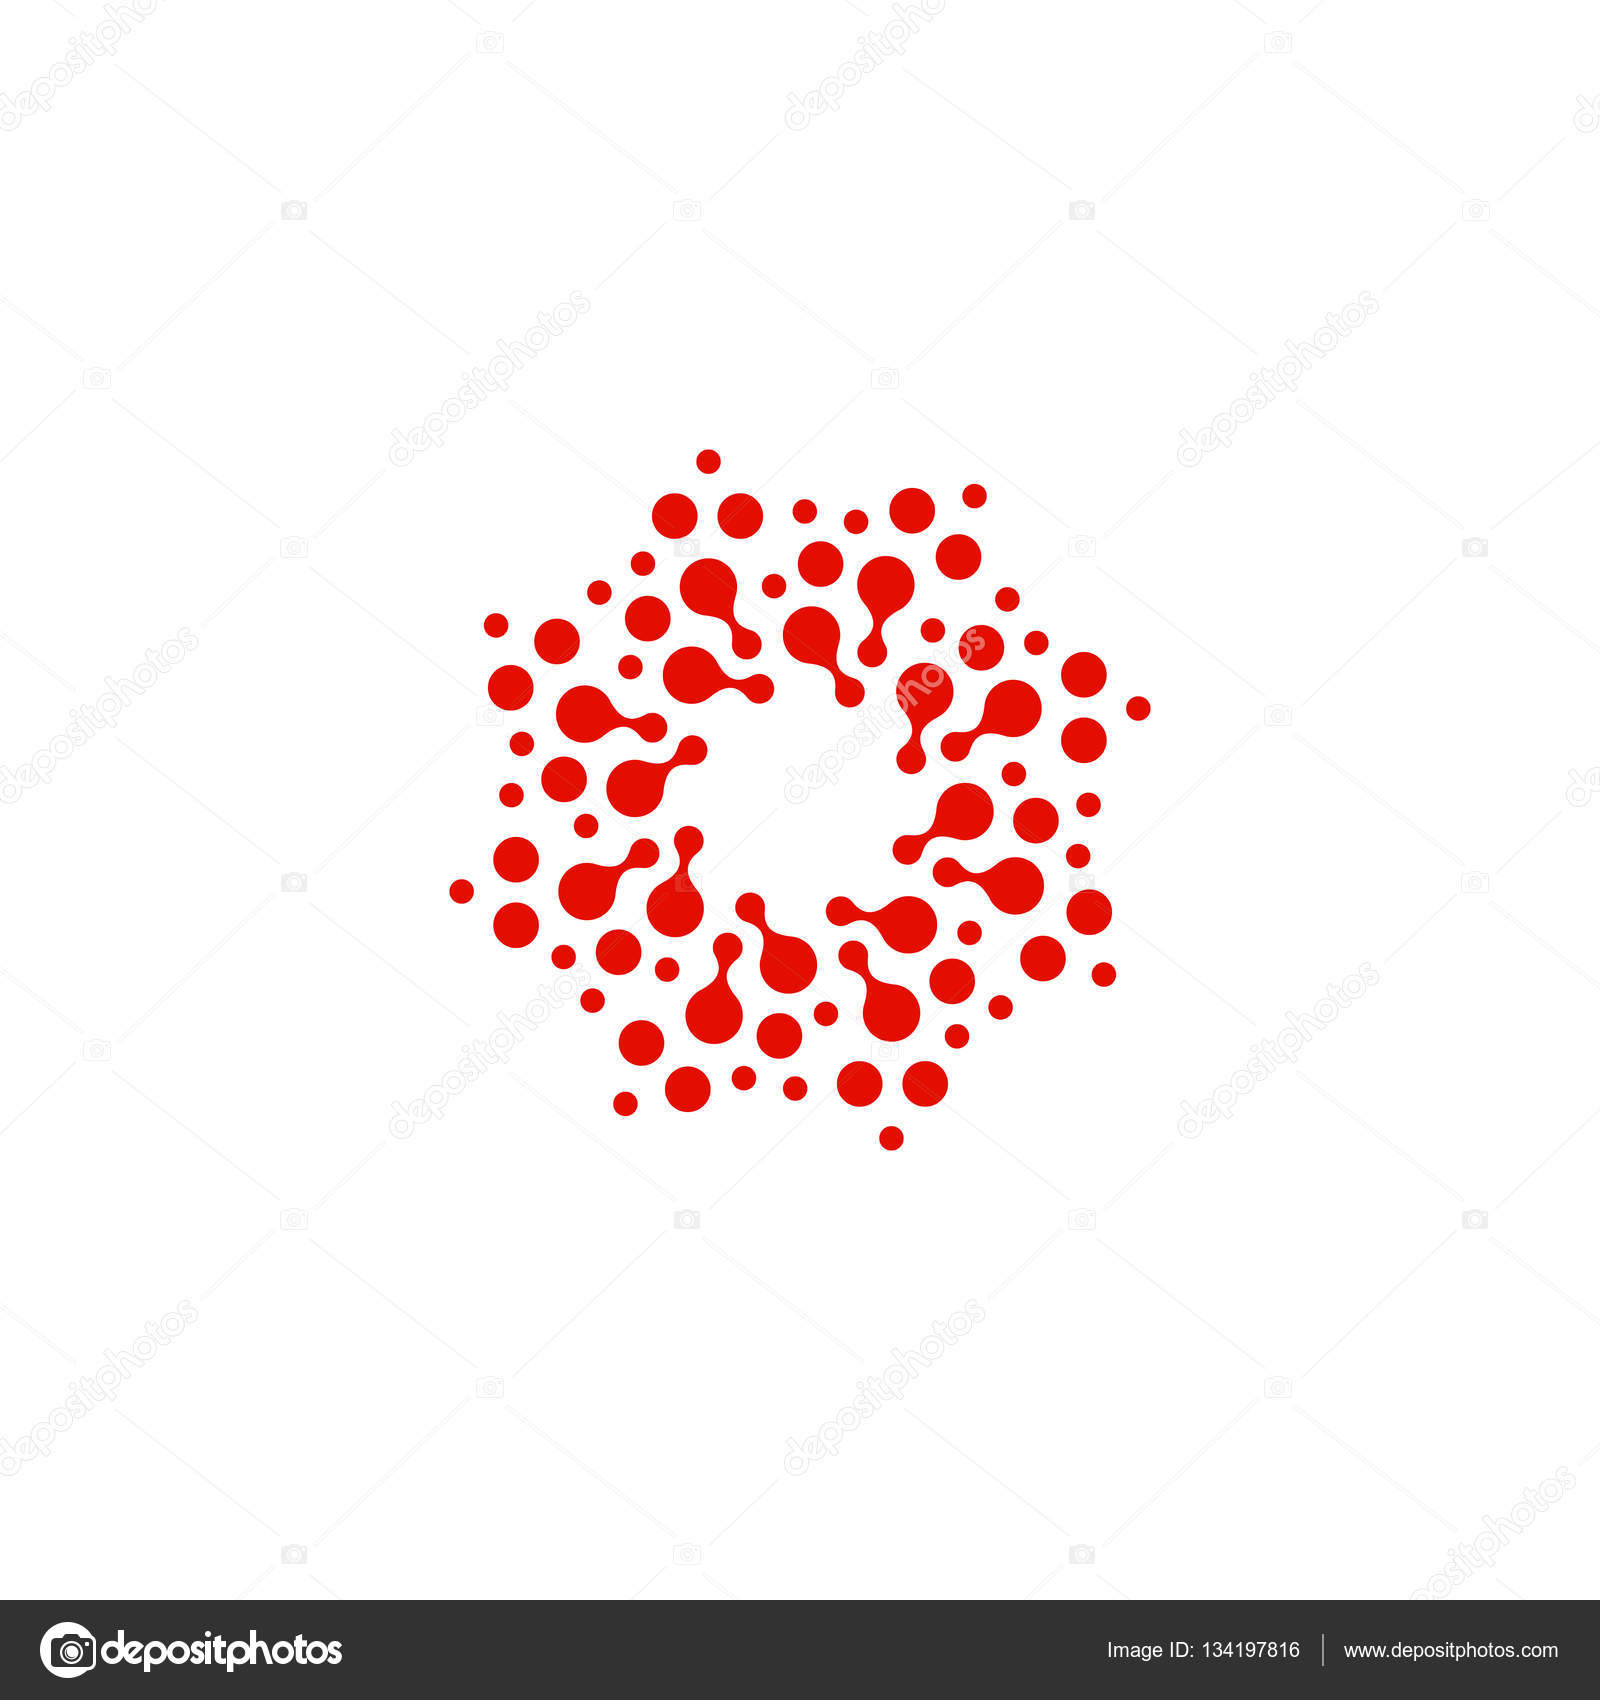 Abstract circle logotype unusual dotted round isolated chem logo abstract circle logotype unusual dotted round isolated chem logo virus icon red sun flower symbol spiral signctor illustration vector by artyway biocorpaavc Choice Image